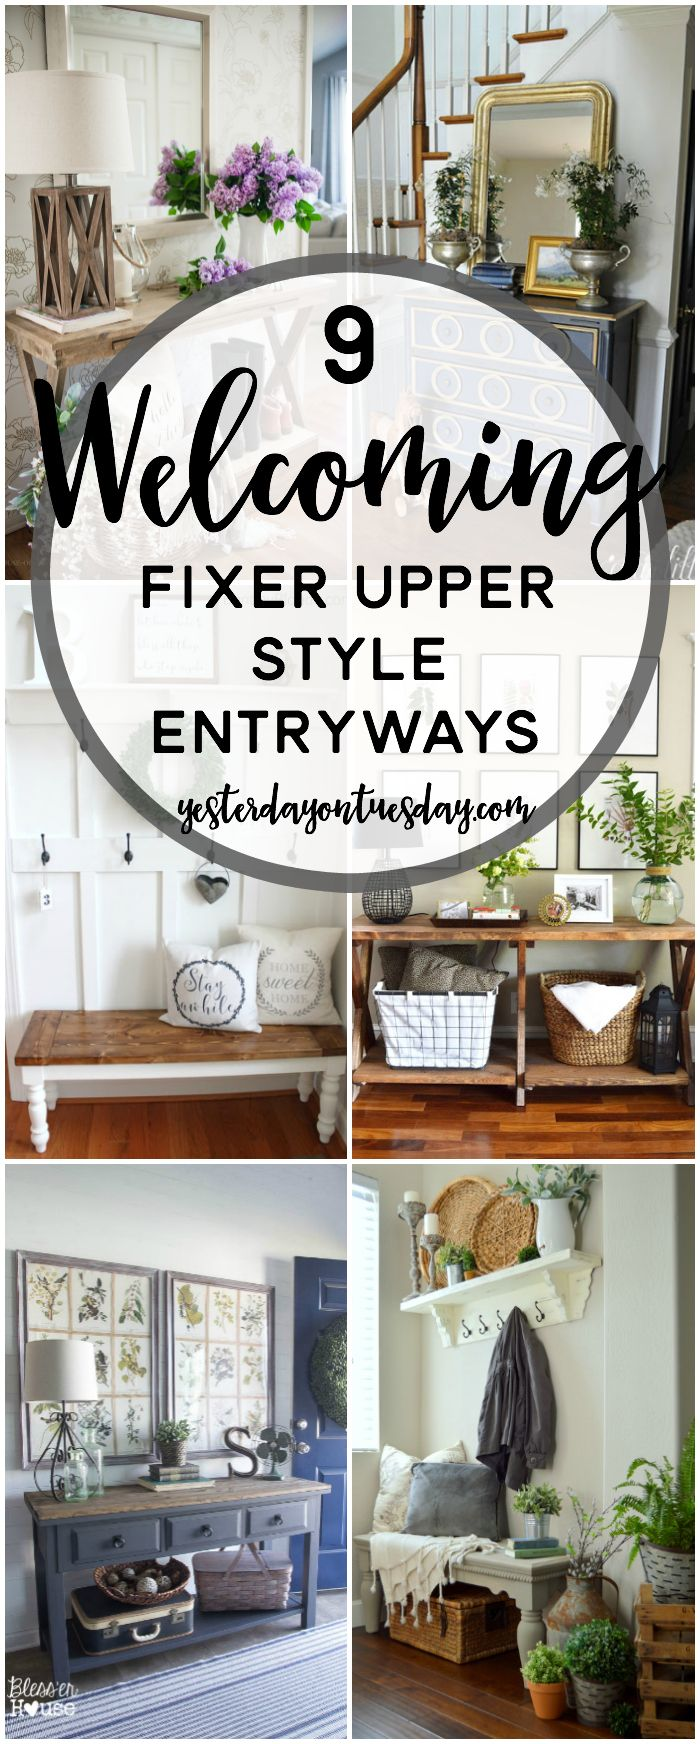 9 Cozy Fixer Upper Style Entryways Hometalk Diy Diy